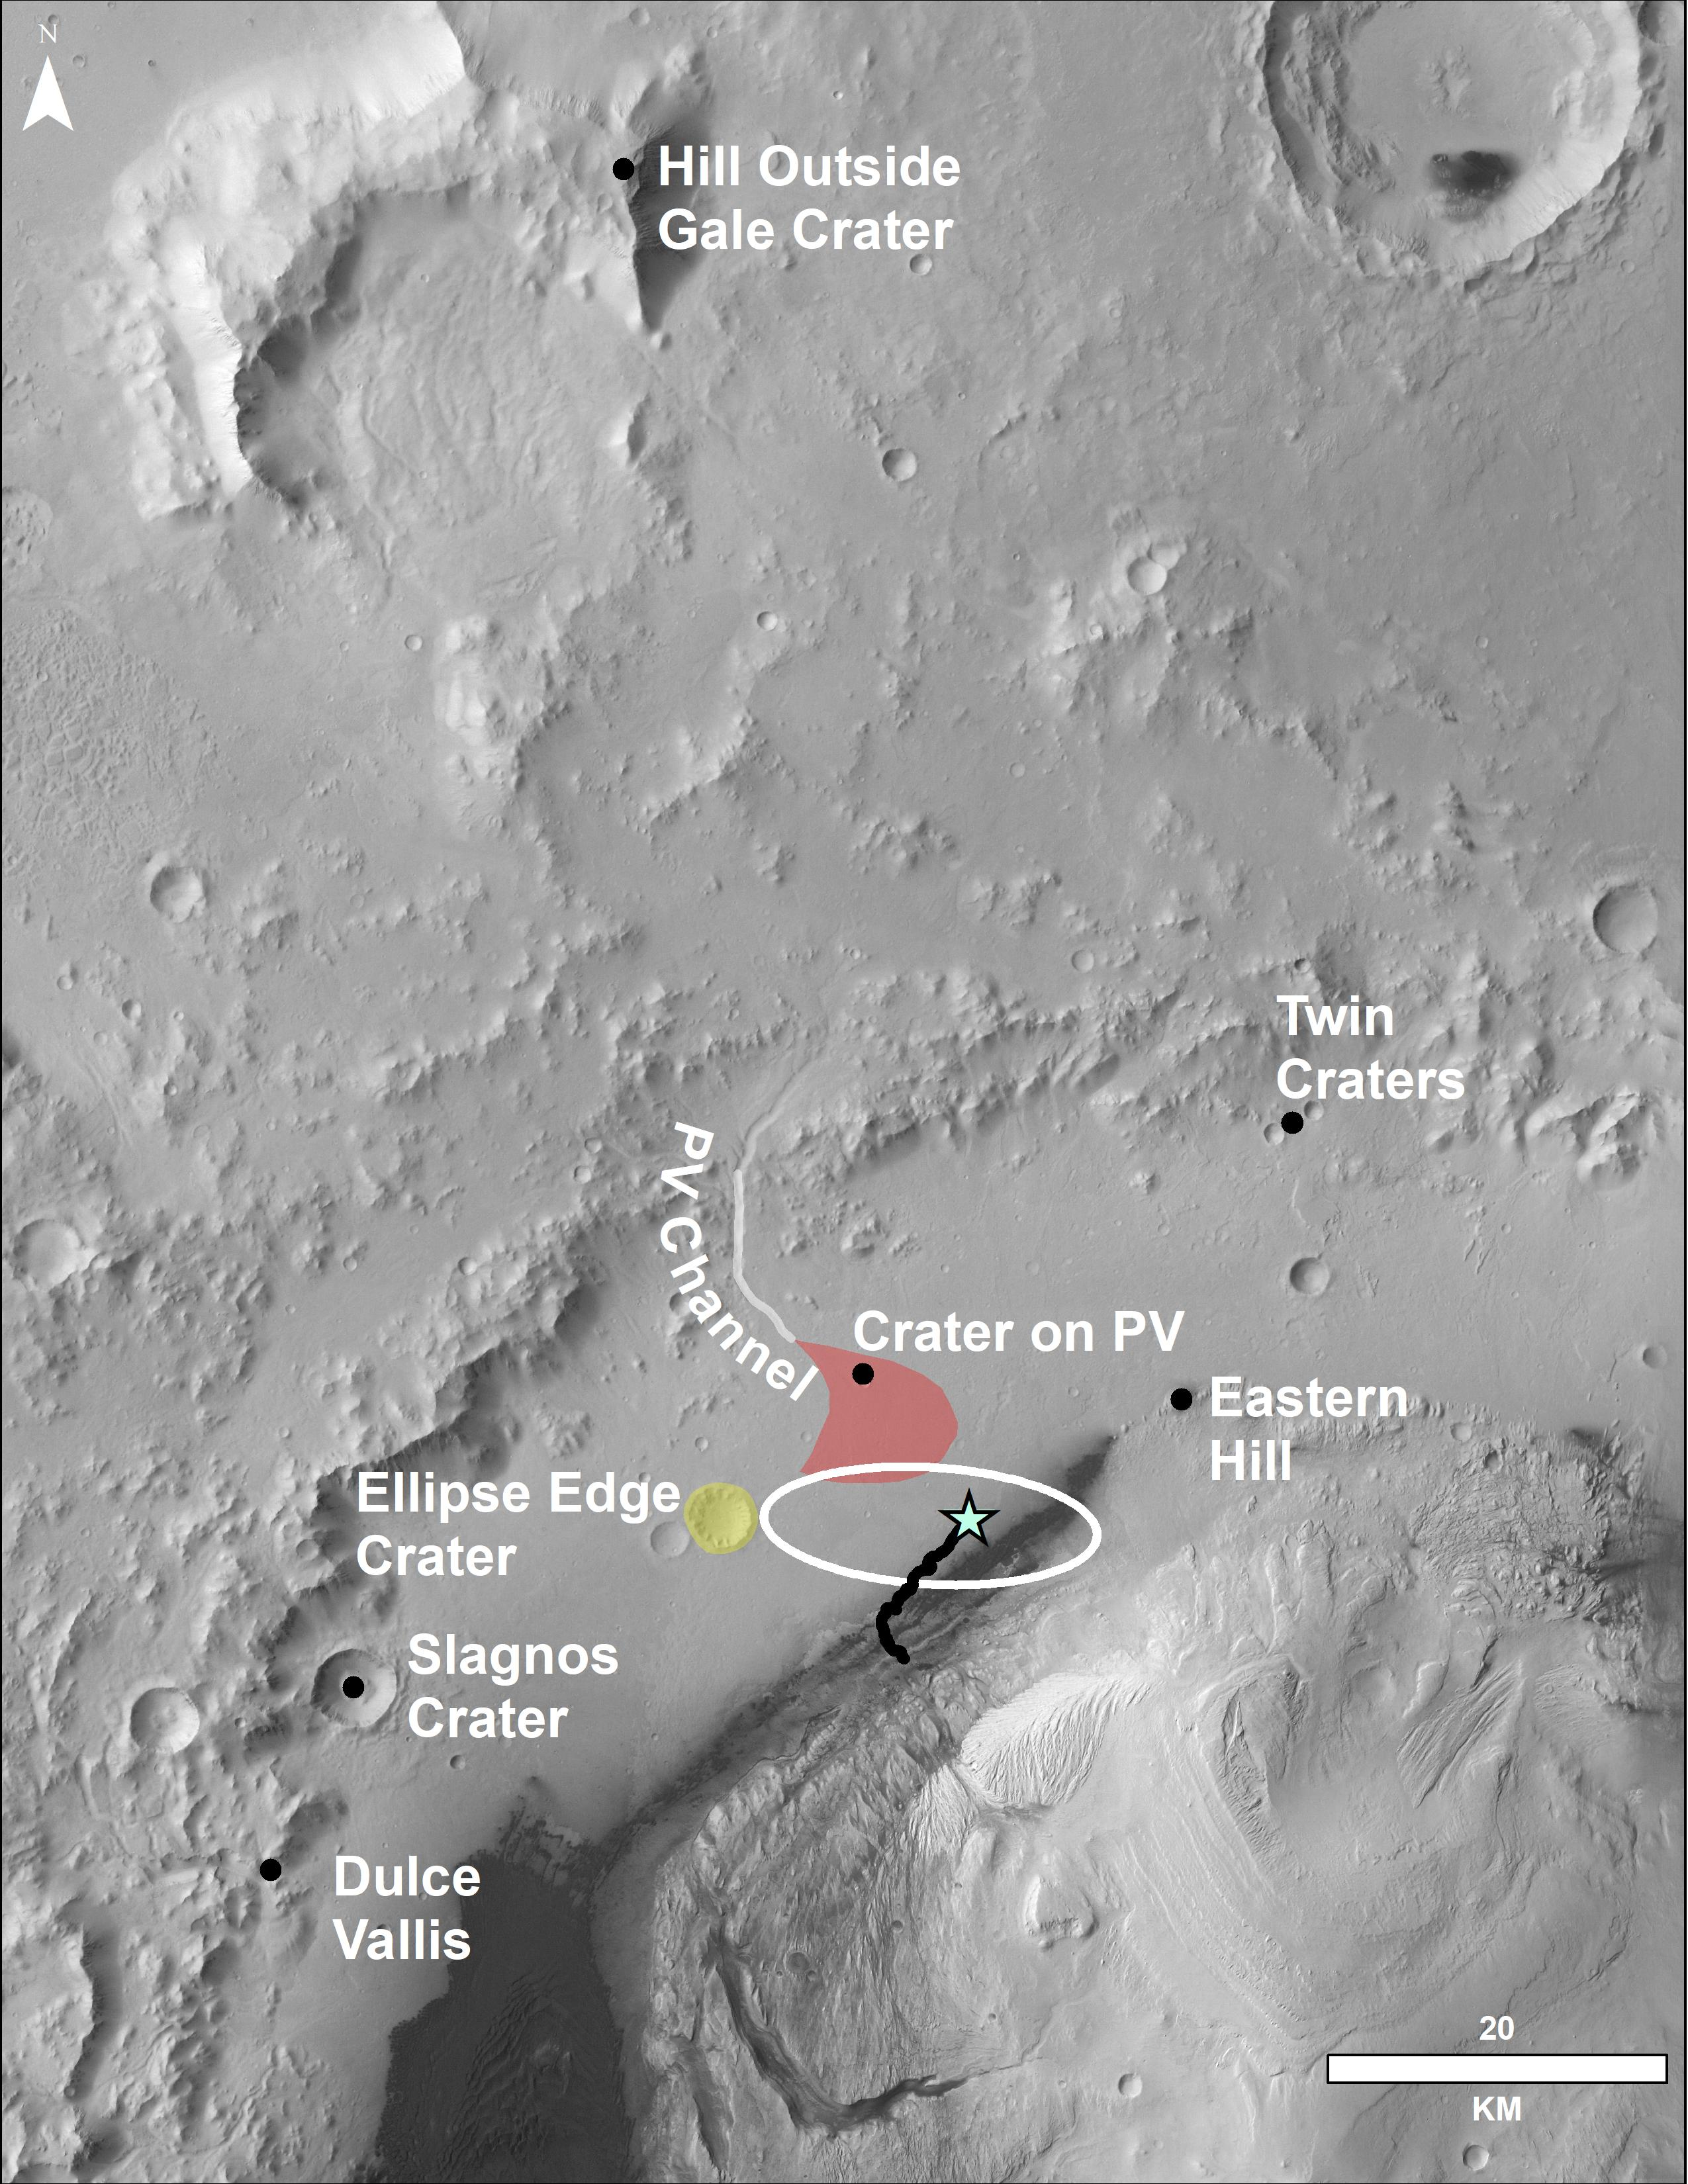 This image of the northwestern portion of Mars' Gale Crater and terrain north of it, from the European Space Agency's Mars Express orbiter, provides a locator map for some features visible in an October 2017 panorama from NASA's Curiosity Mars rover.